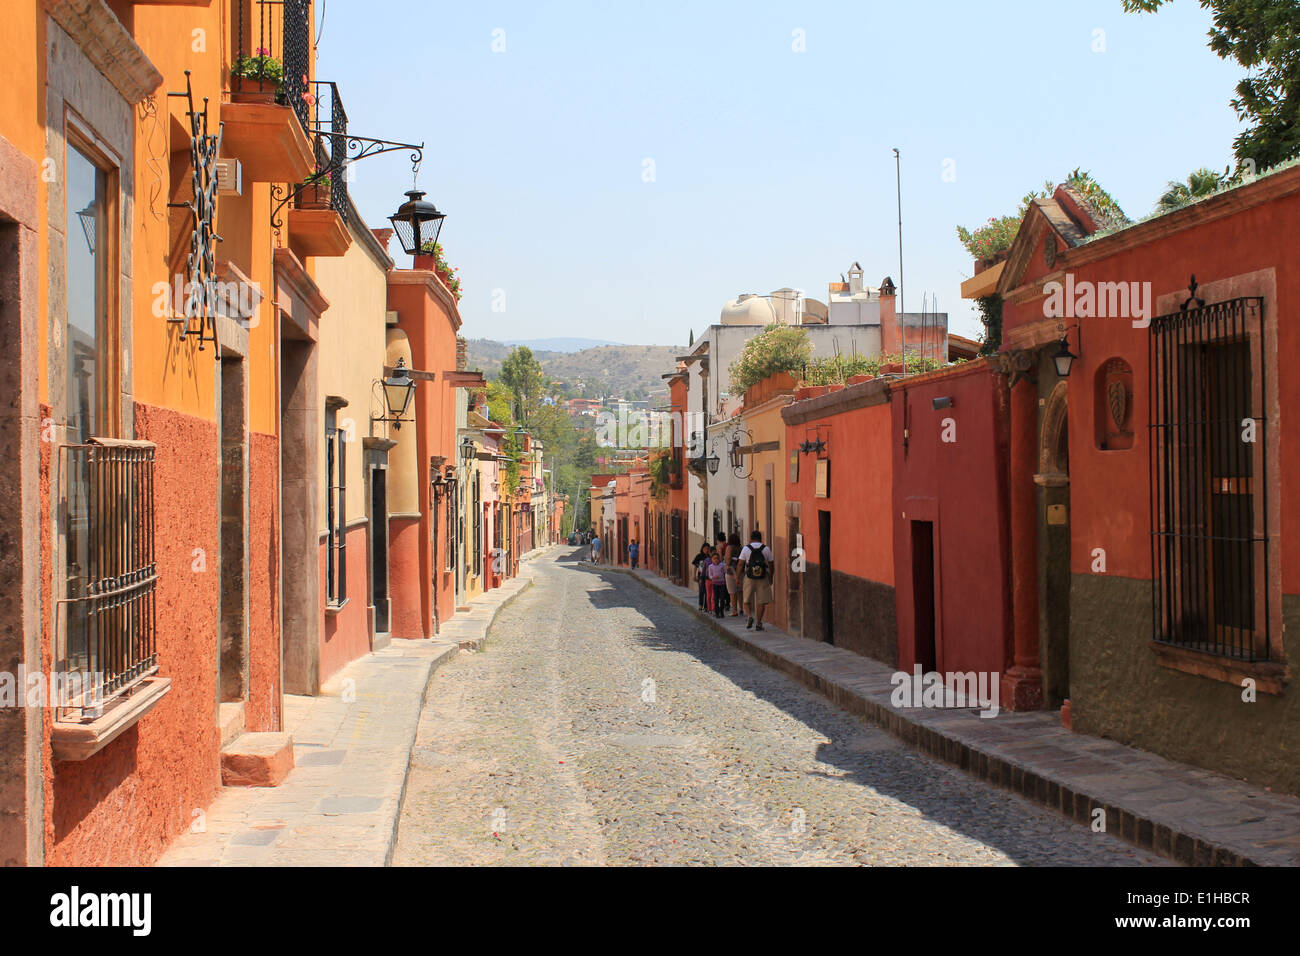 Colorful houses lining a cobbled street in San Miguel de Allende, Guanajuato, Mexico Stock Photo